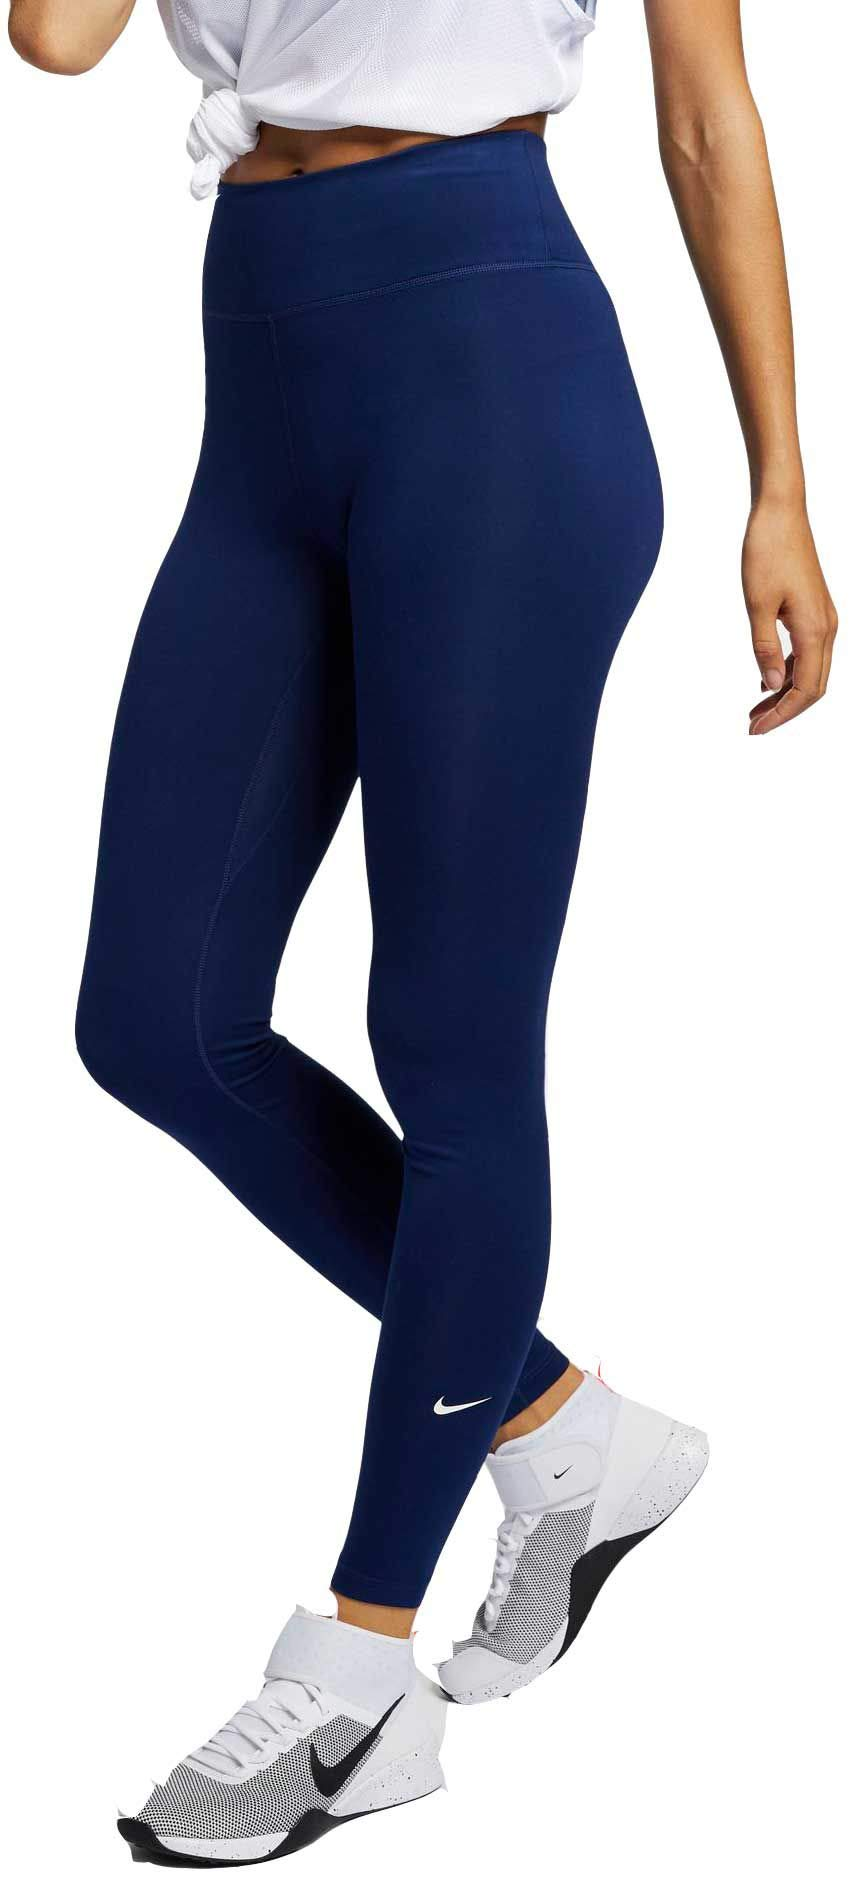 Nike Women's All-in Tight, Blue Void/White, X-Small